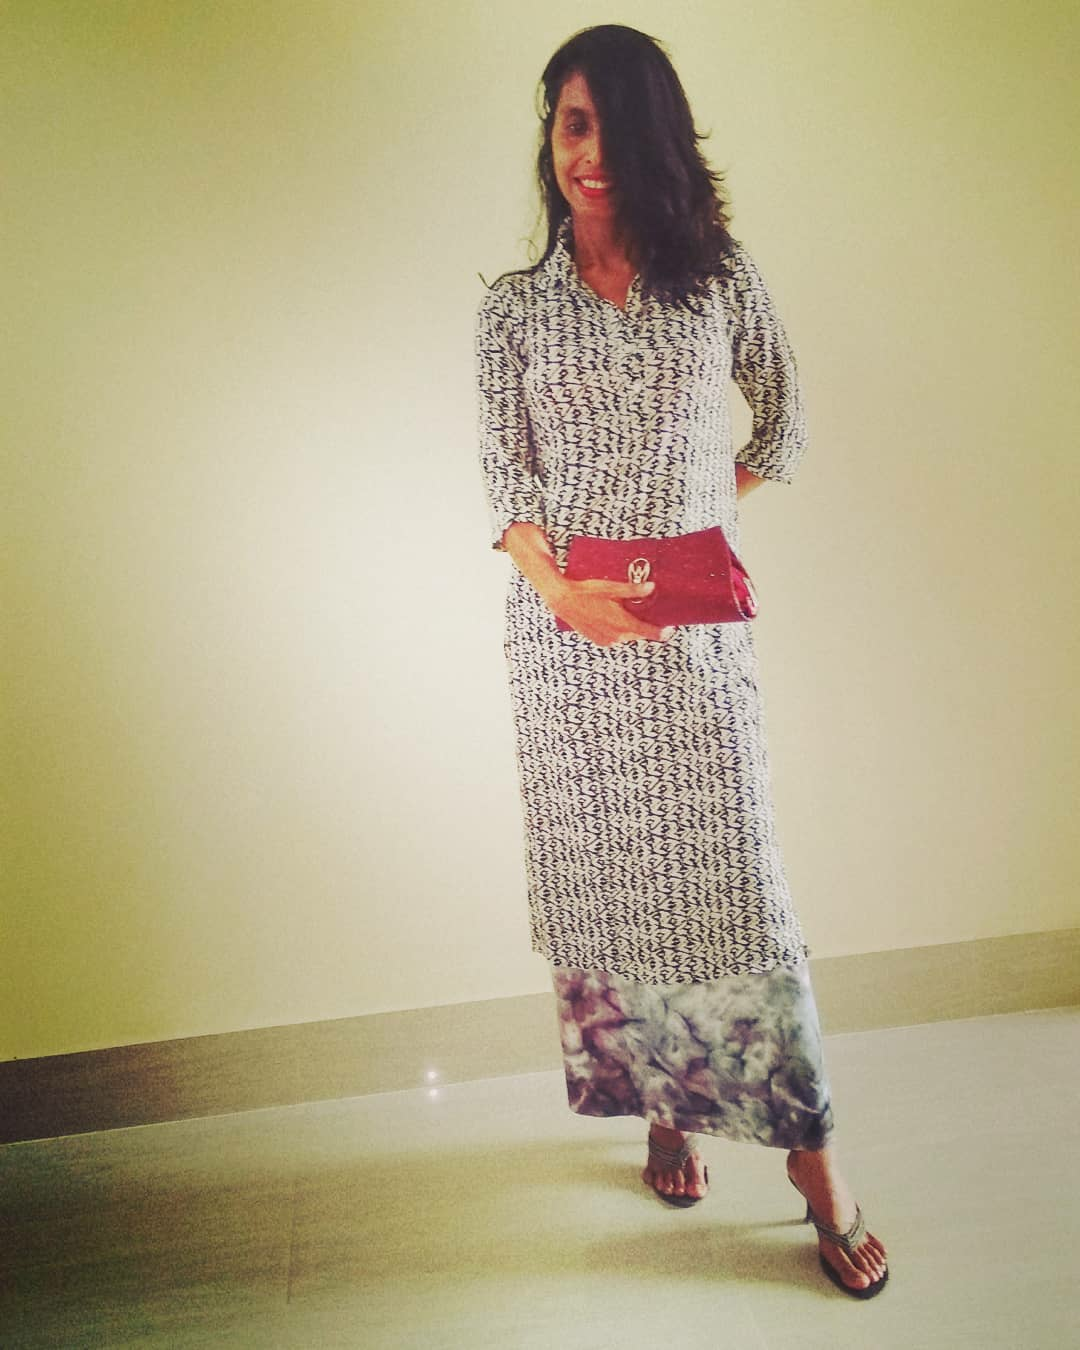 allboutfashion-An ethnic style